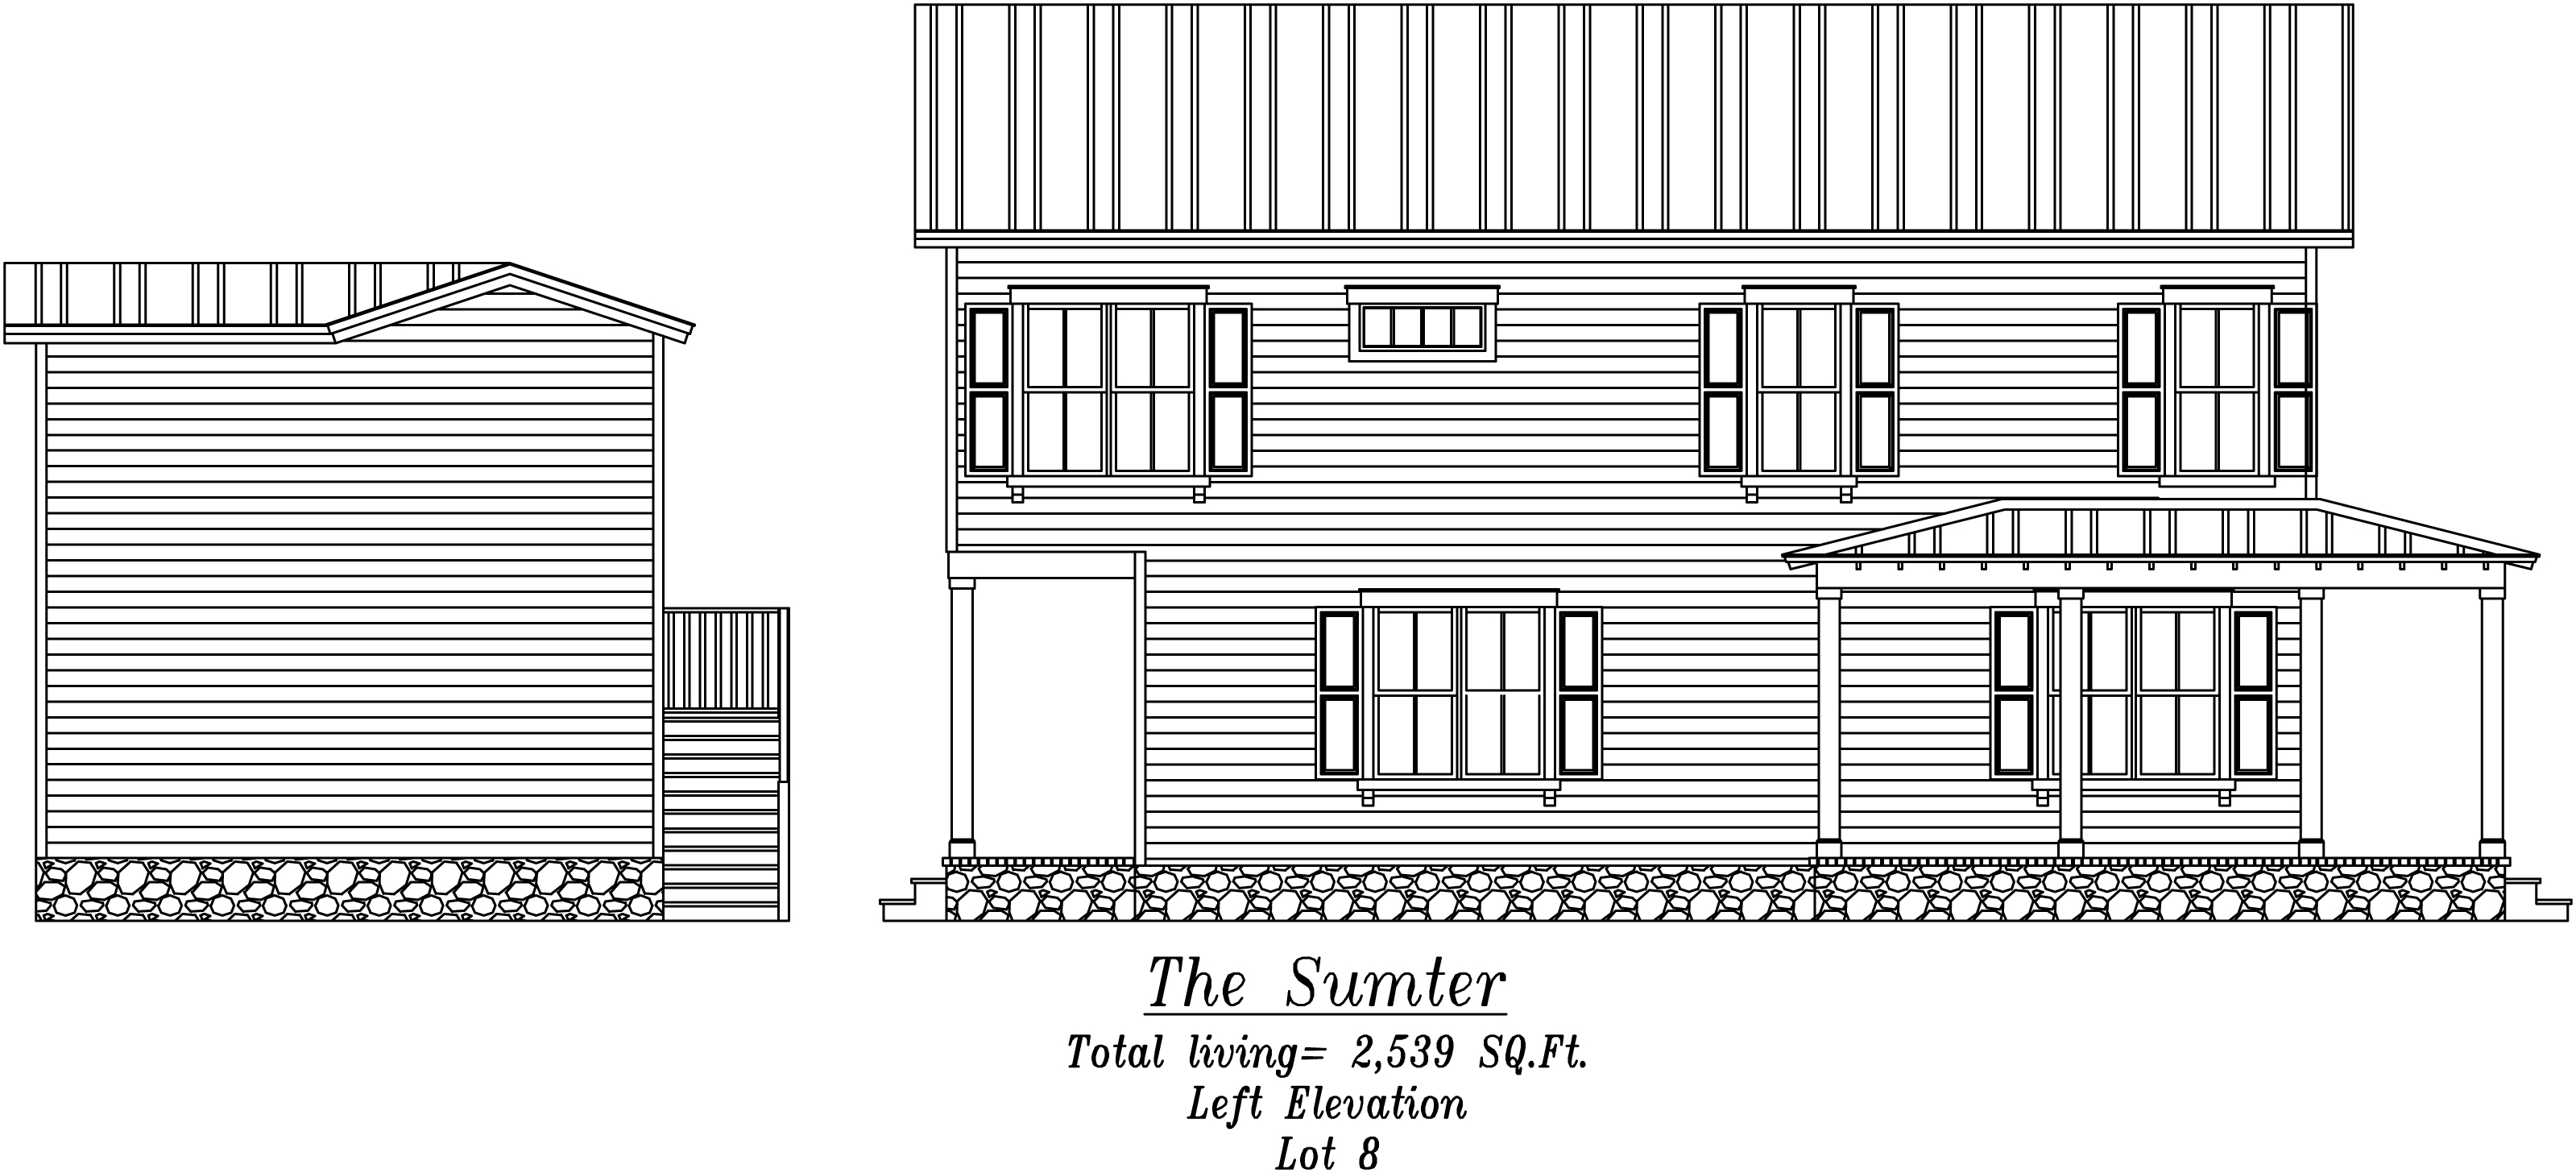 Sumter Left Elevation